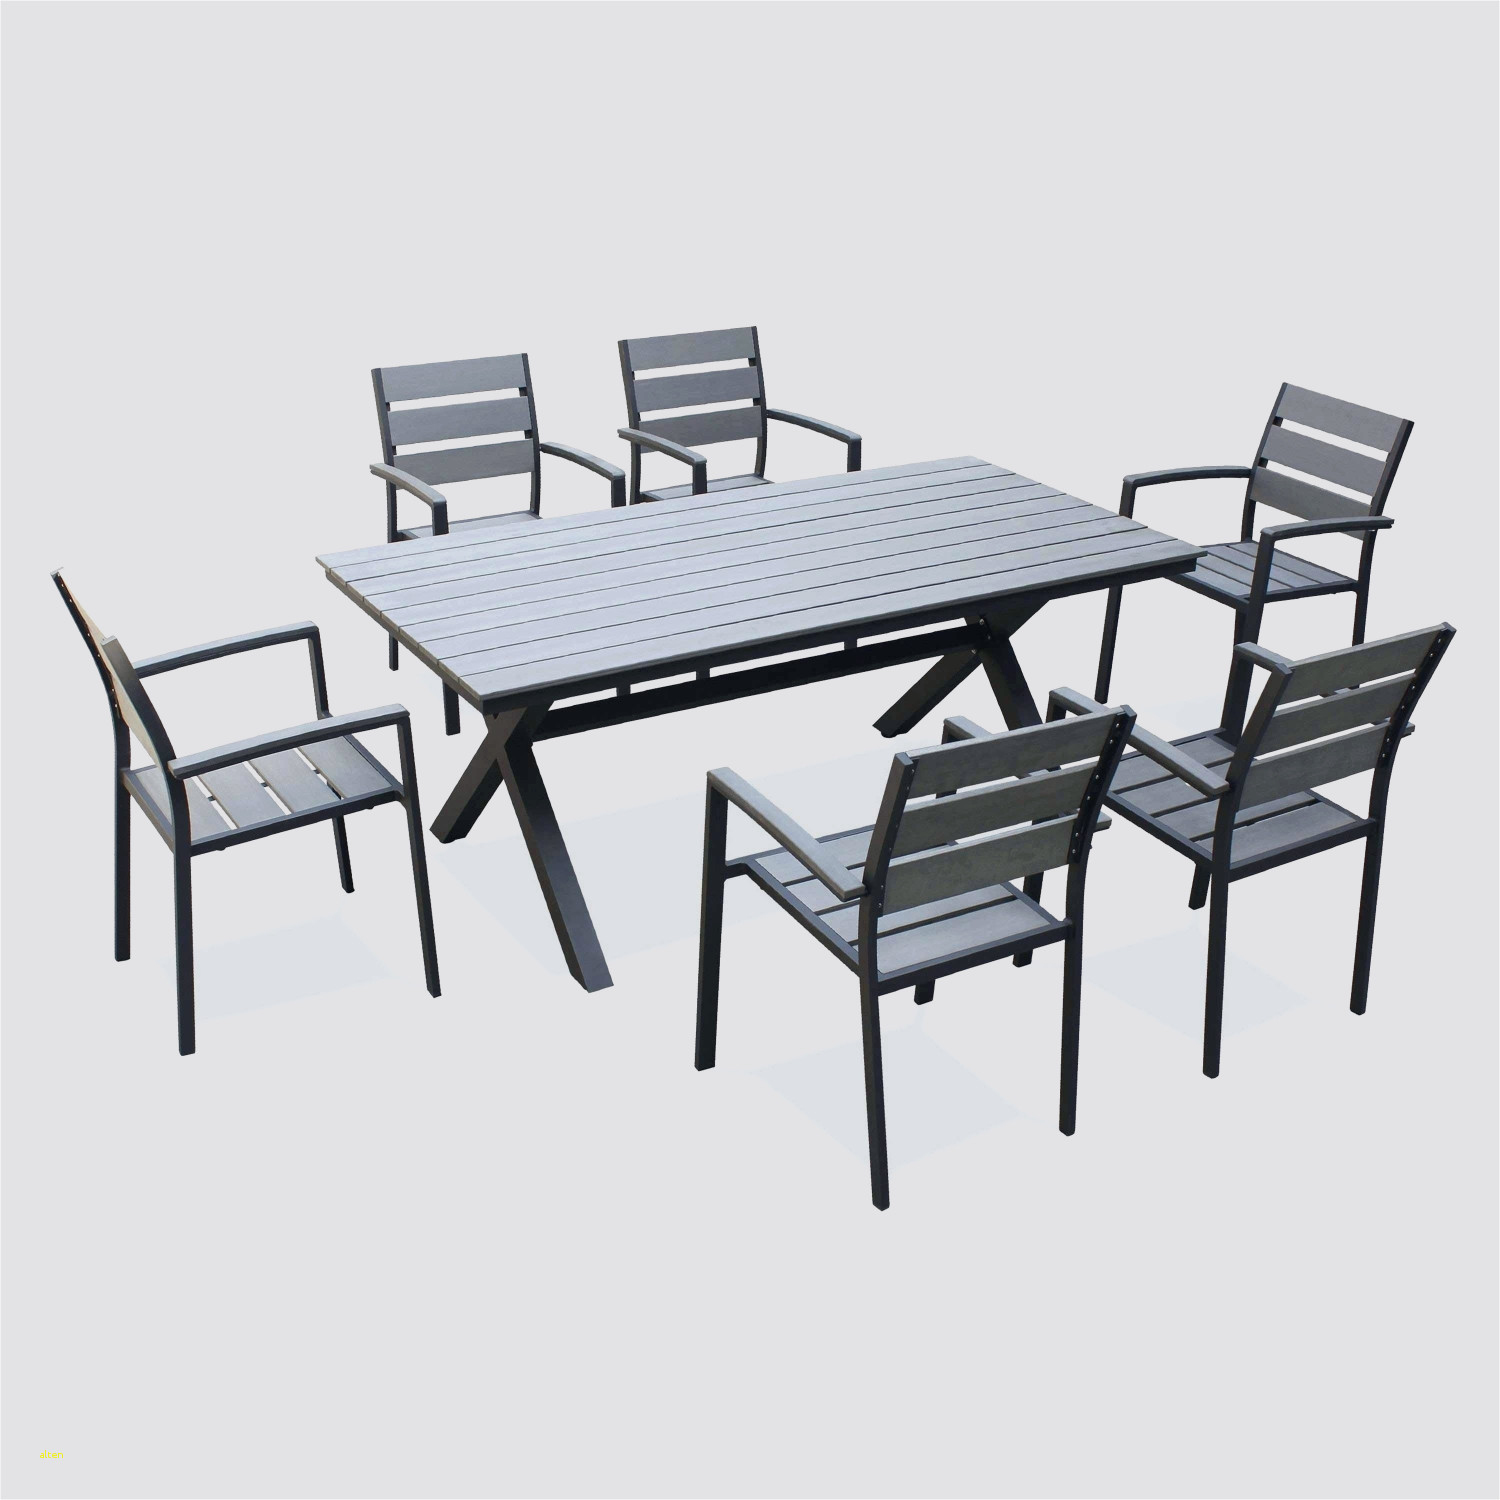 Table Pliante Resine Carrefour Luxe Photos Table Jardin Carrefour ...